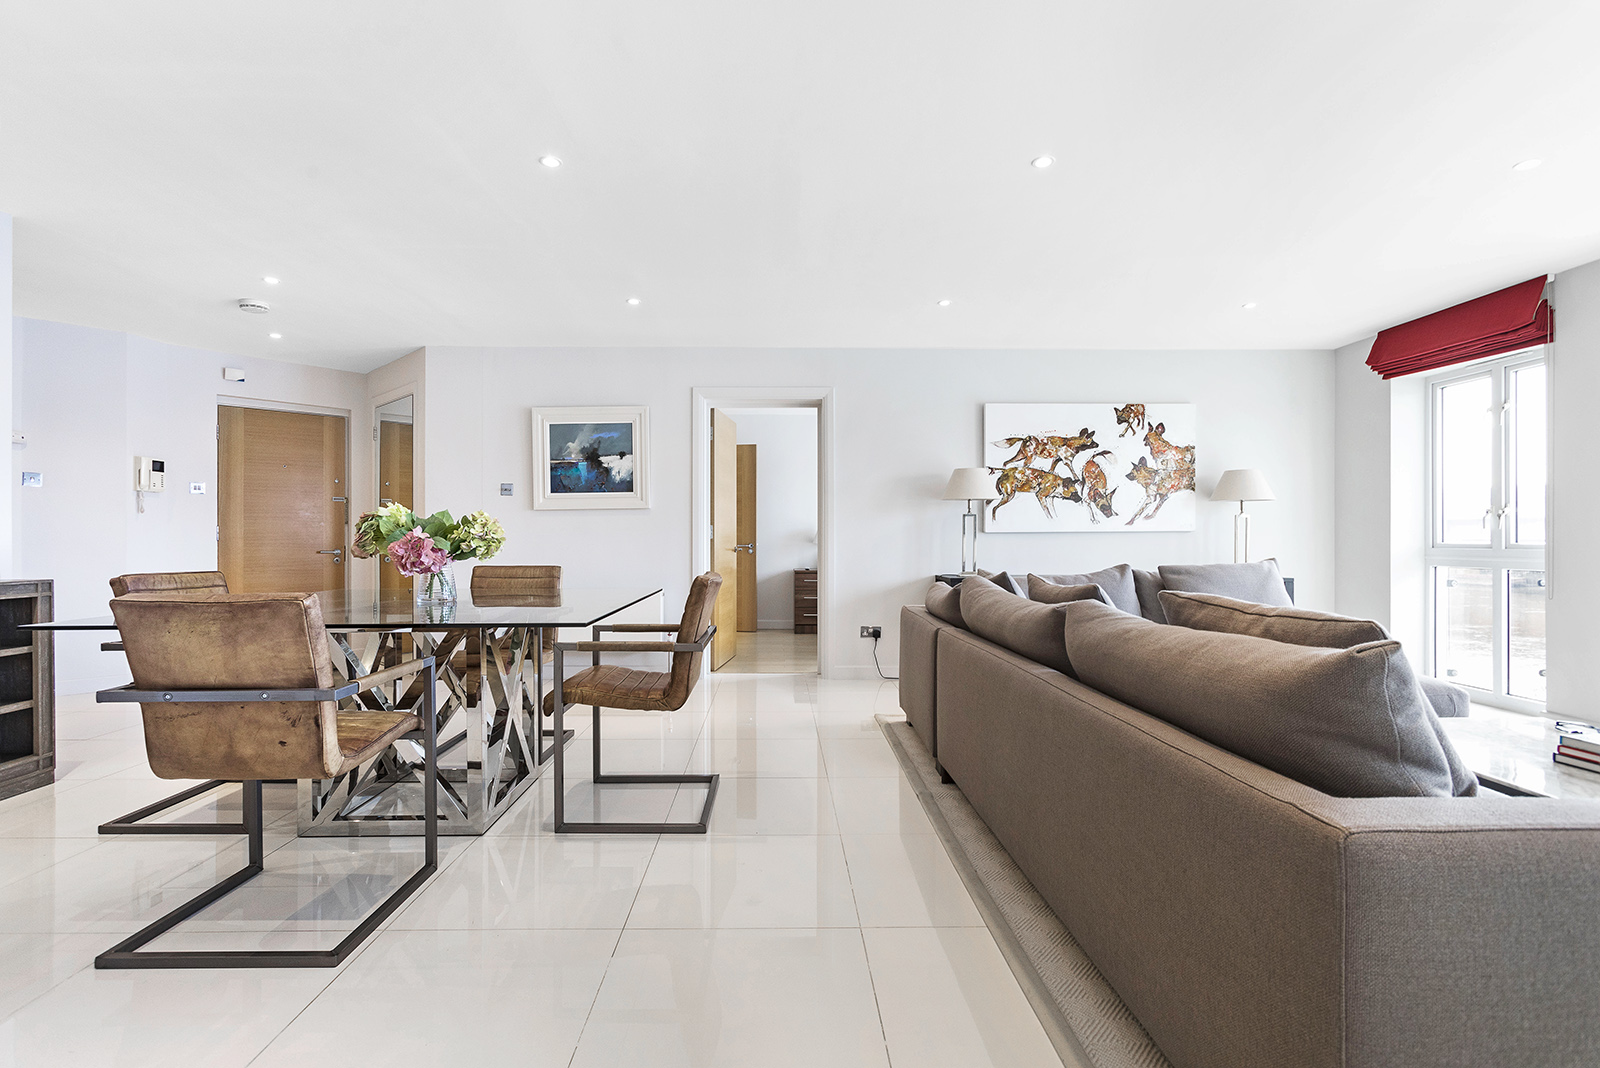 Supererior Modern riverside Fulham Apartment with Balcony and 2 parking spaces